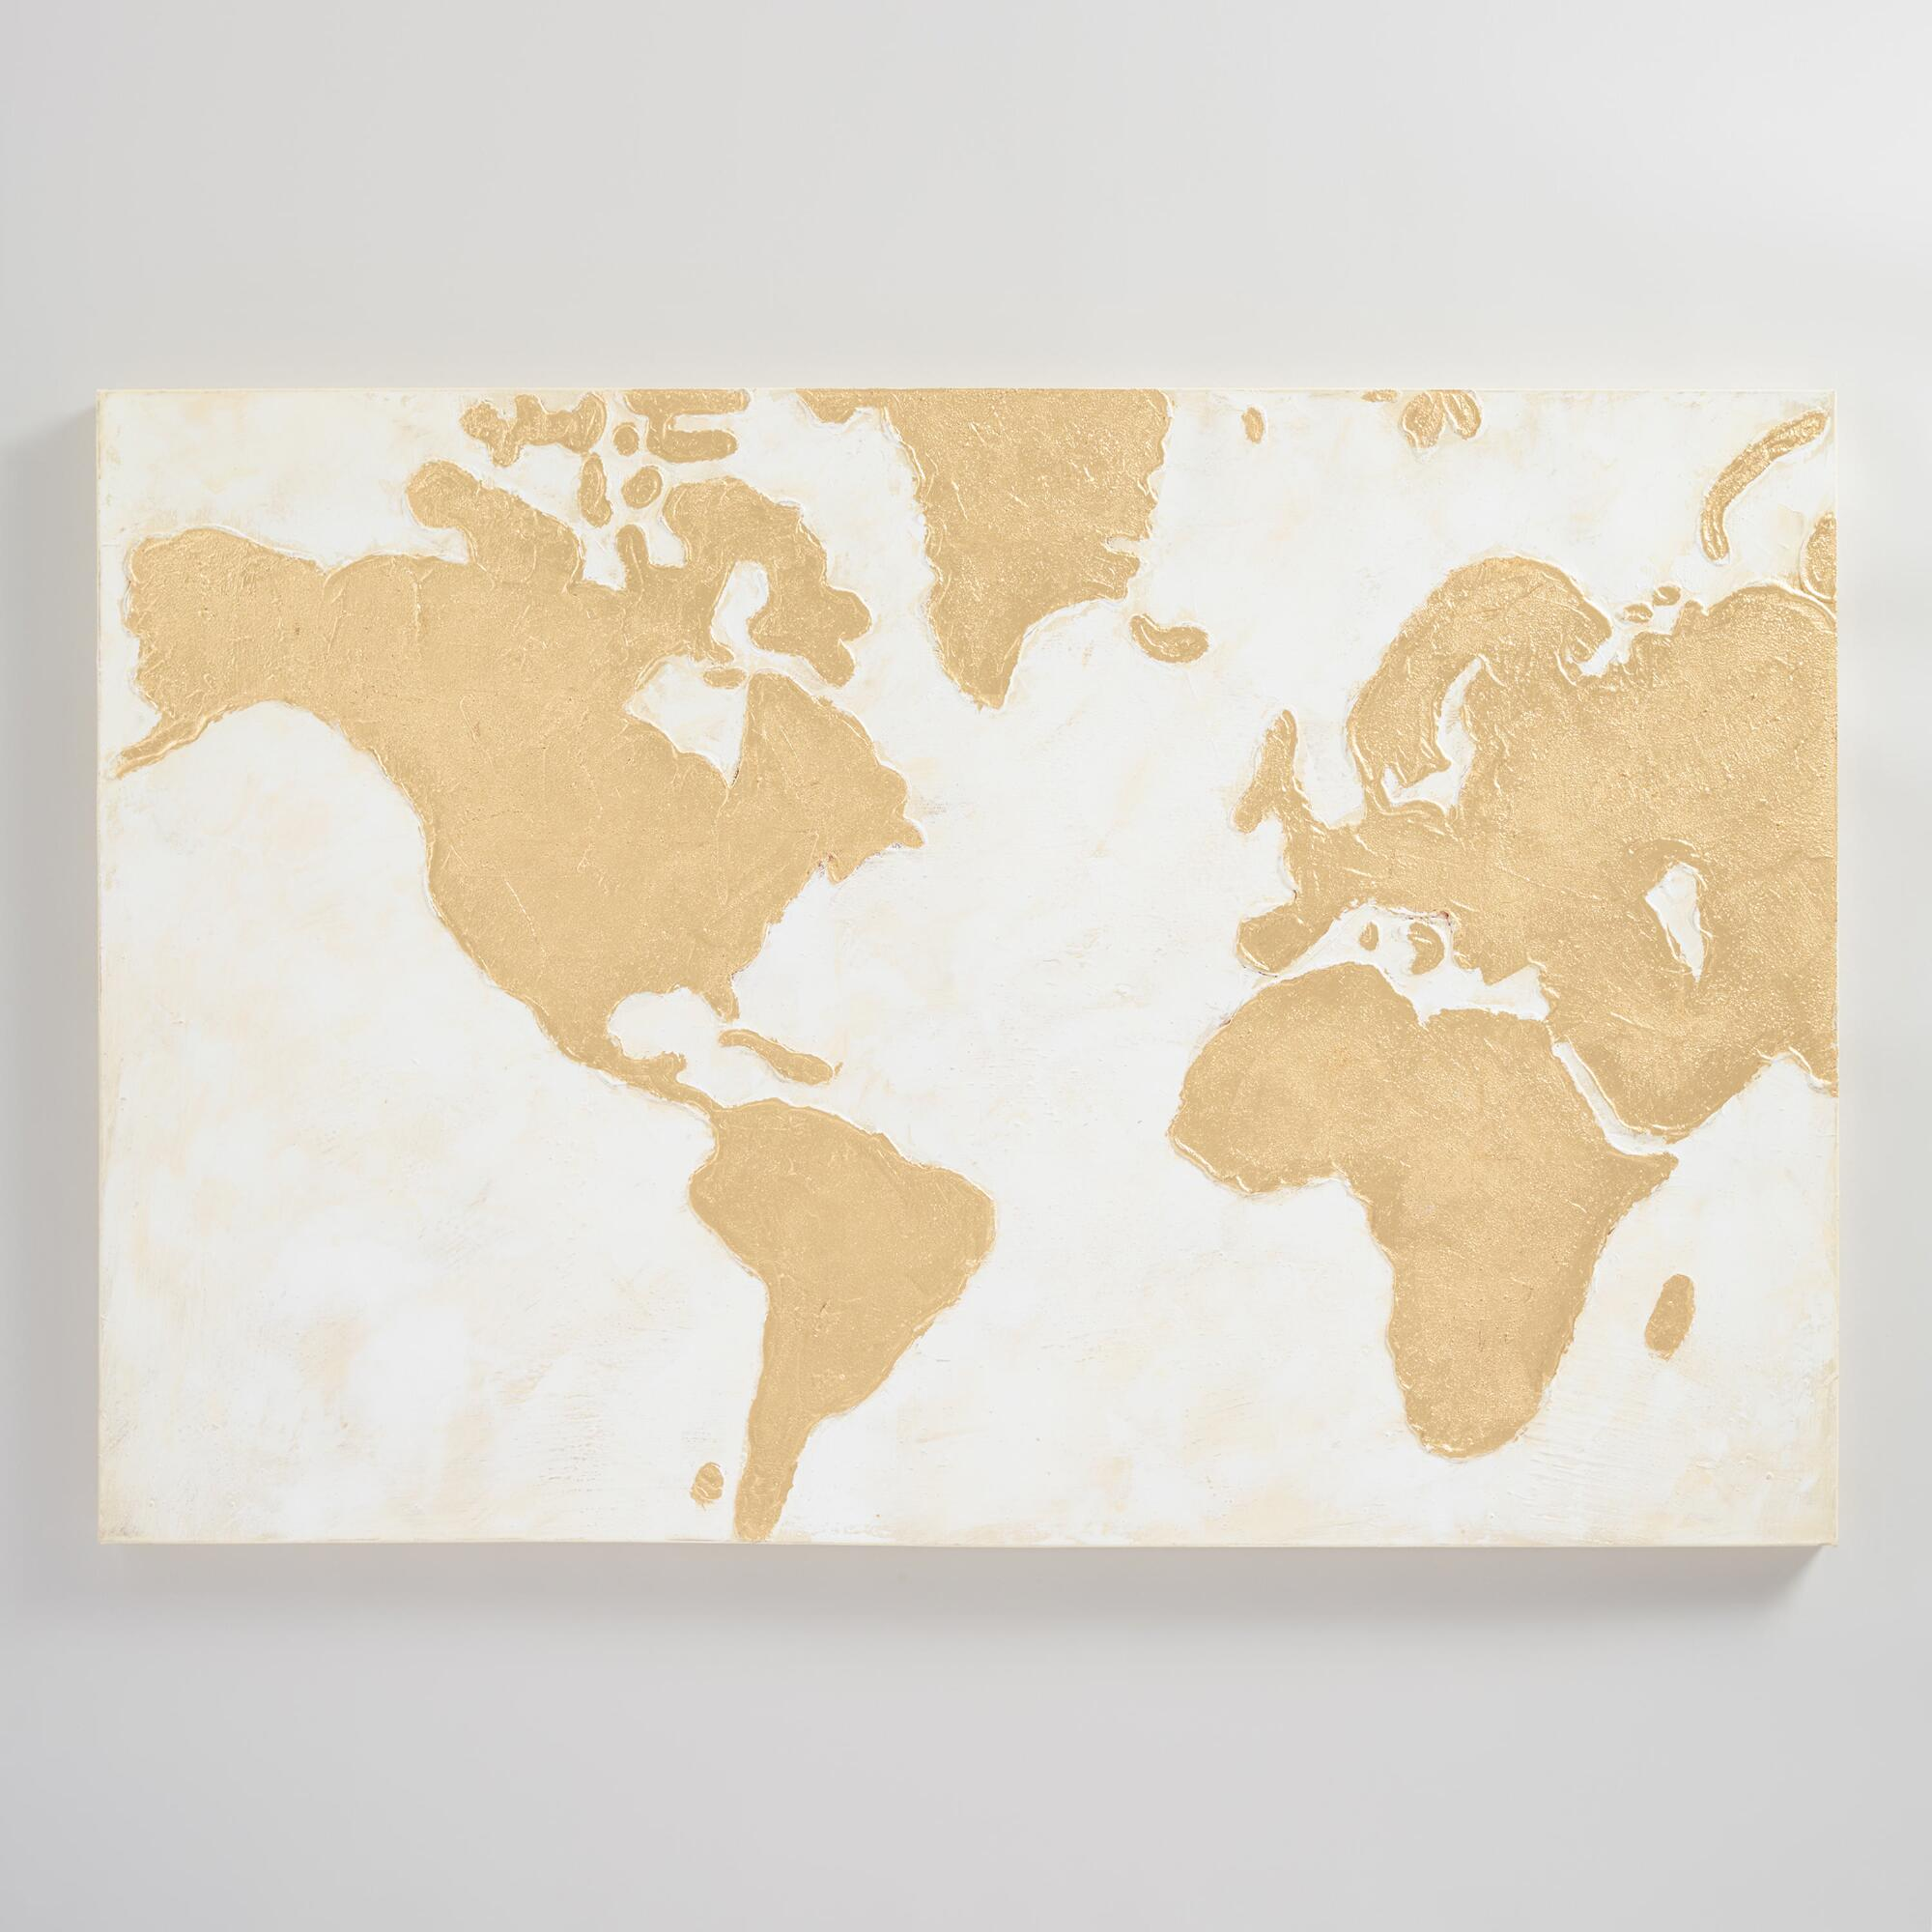 gilded world map wall art world market. Black Bedroom Furniture Sets. Home Design Ideas